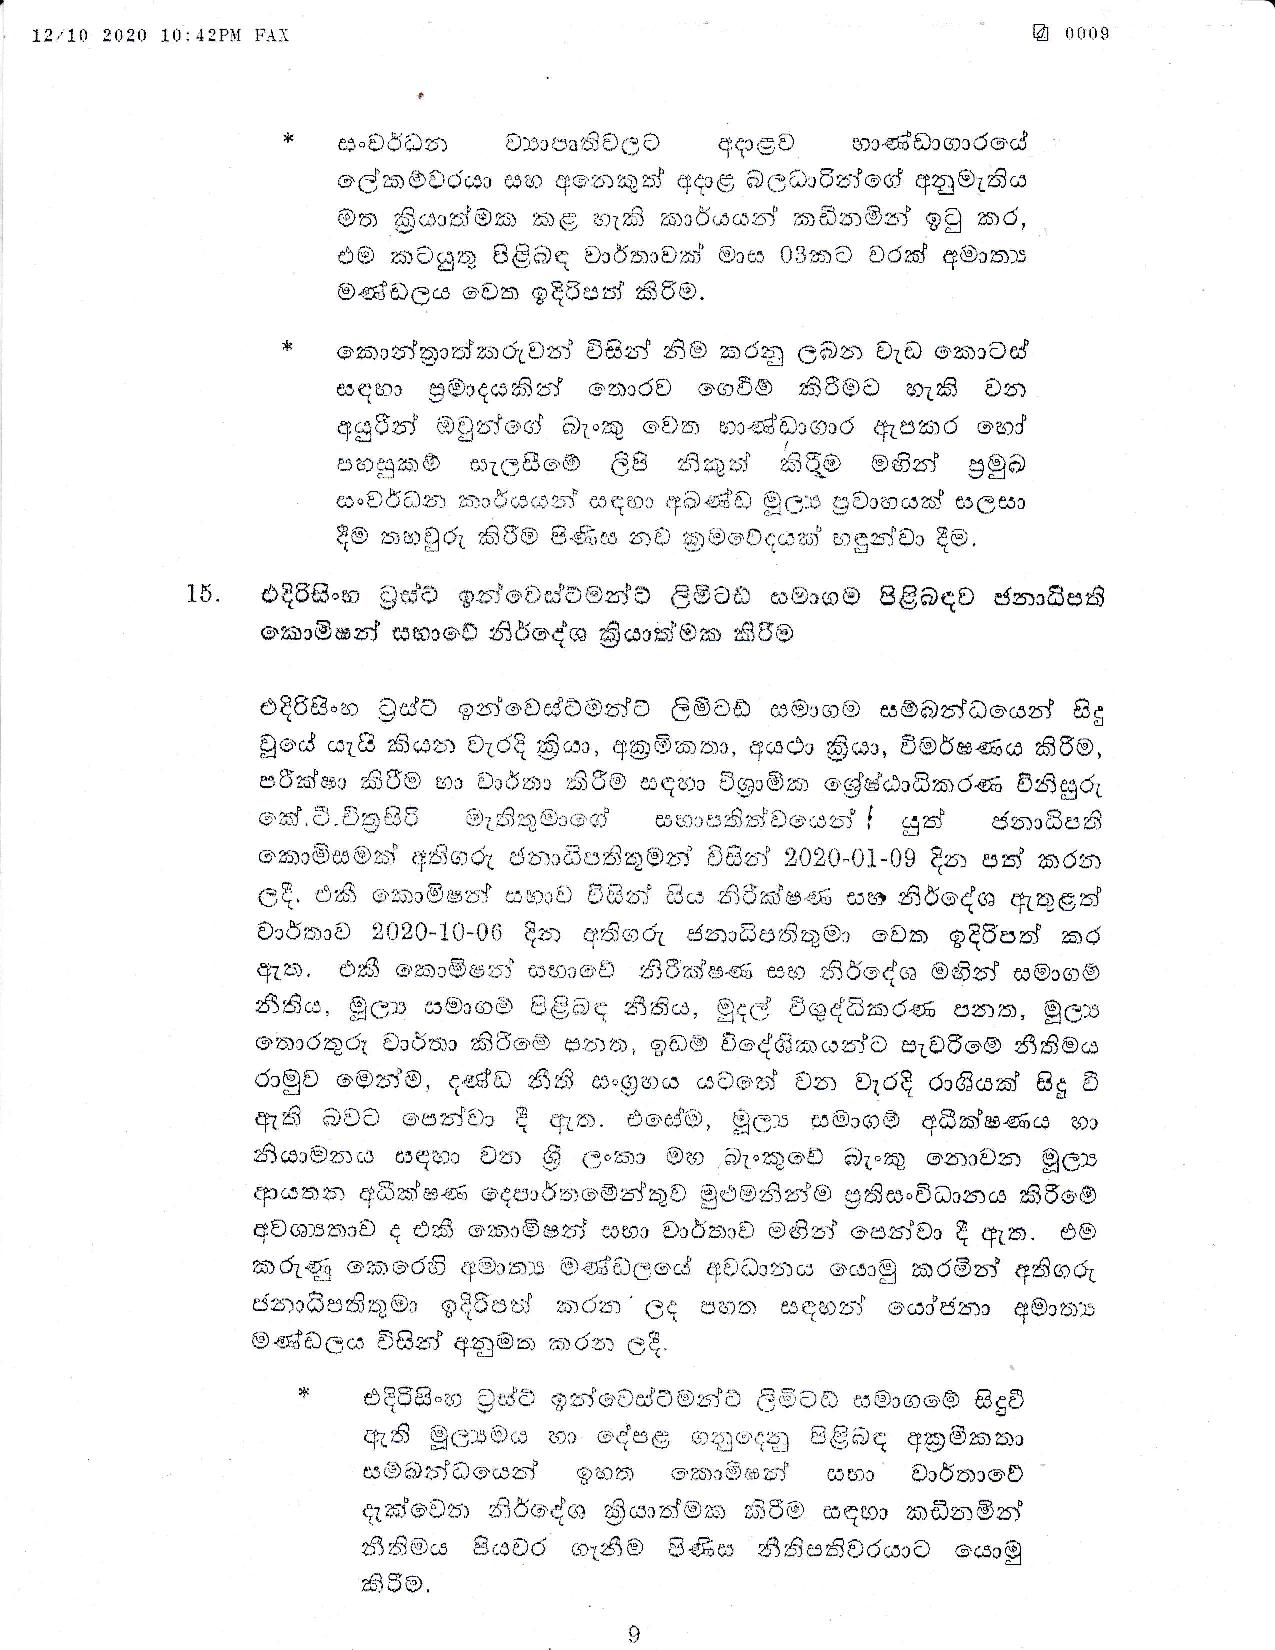 Cabinet Decision on 12.10.2020 page 009